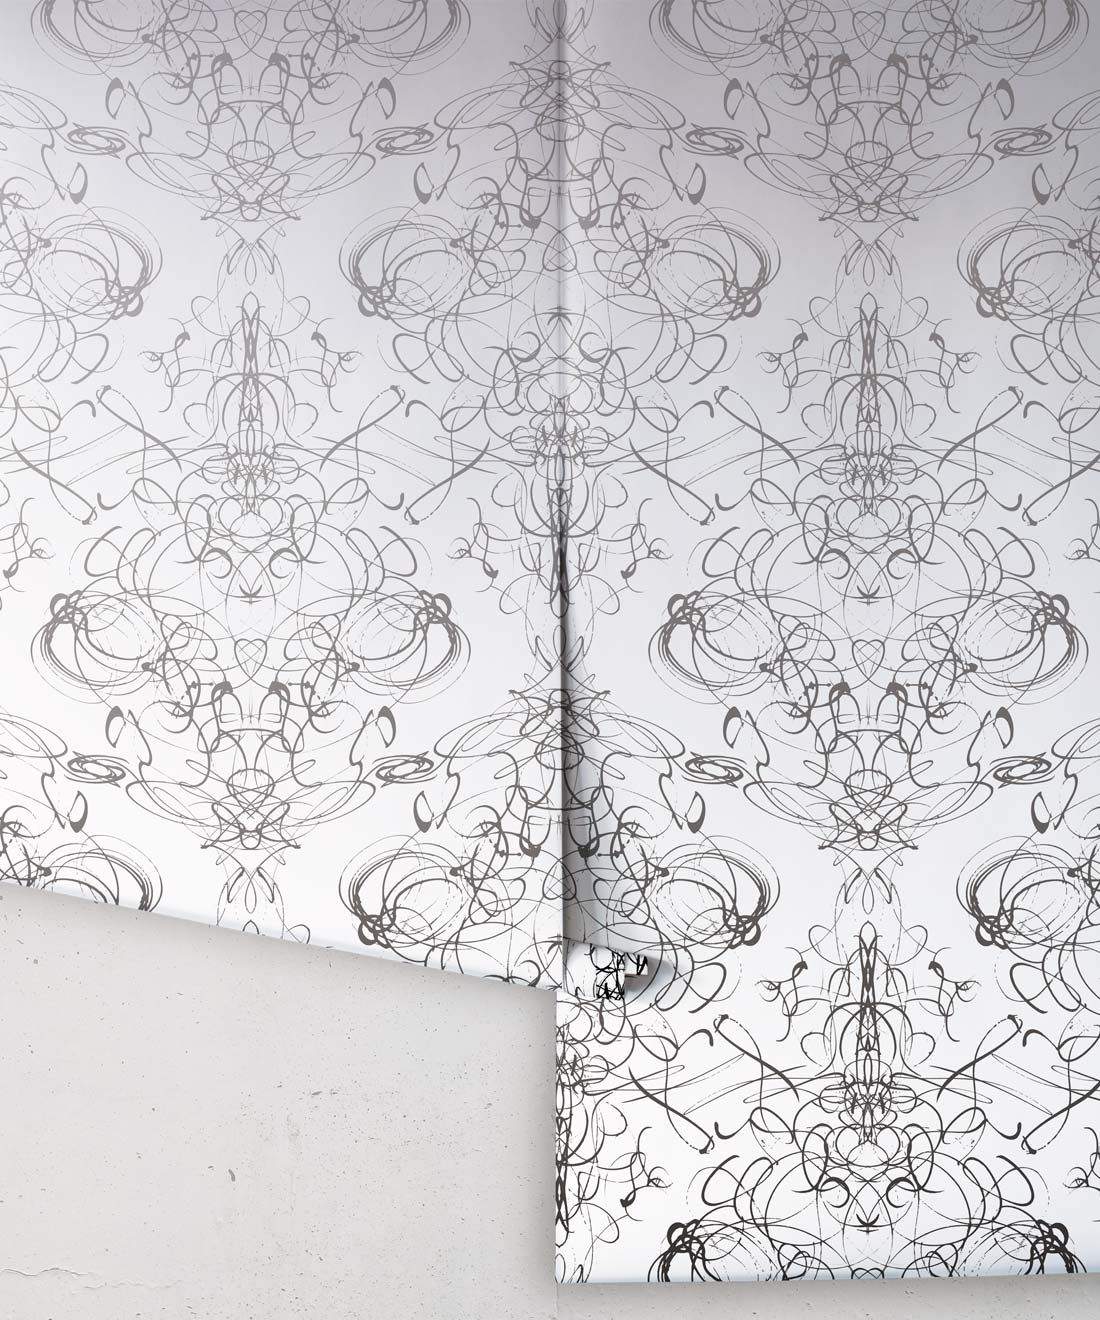 Menna Wallpaper by Simcox • Color black and white • Contemporary Wallpaper • rolls